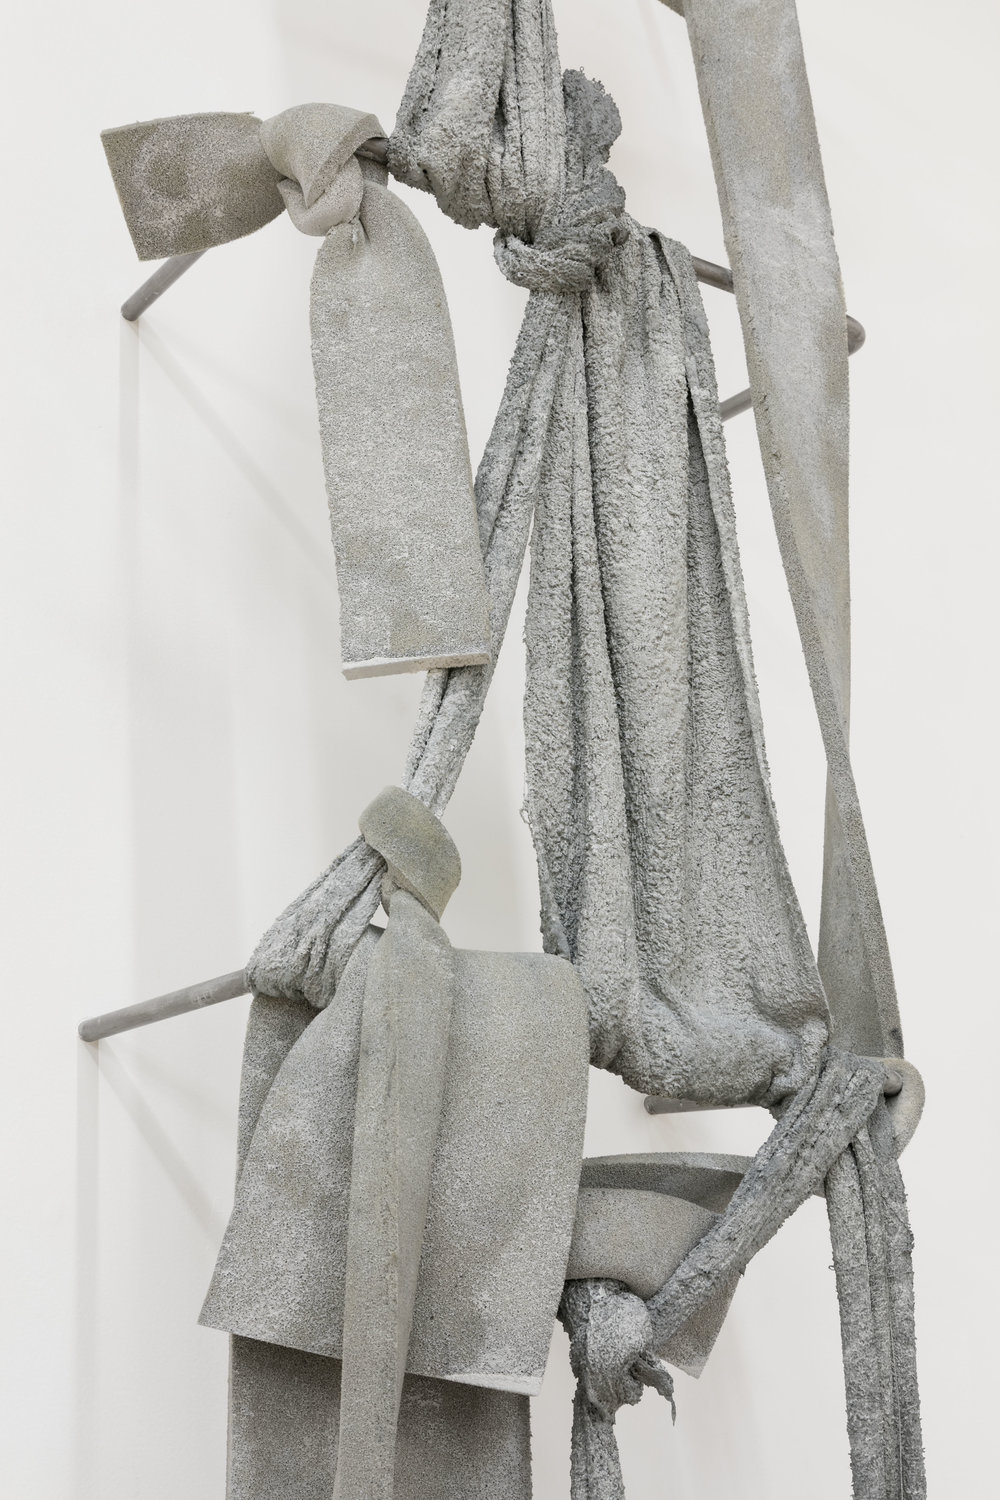 Nikita Gale,  FIXED LOOP I  (detail), 2018, concrete, polyurethane foam, terrycloth, steel, 115 × 21 3/4 × 13 1/4 in.